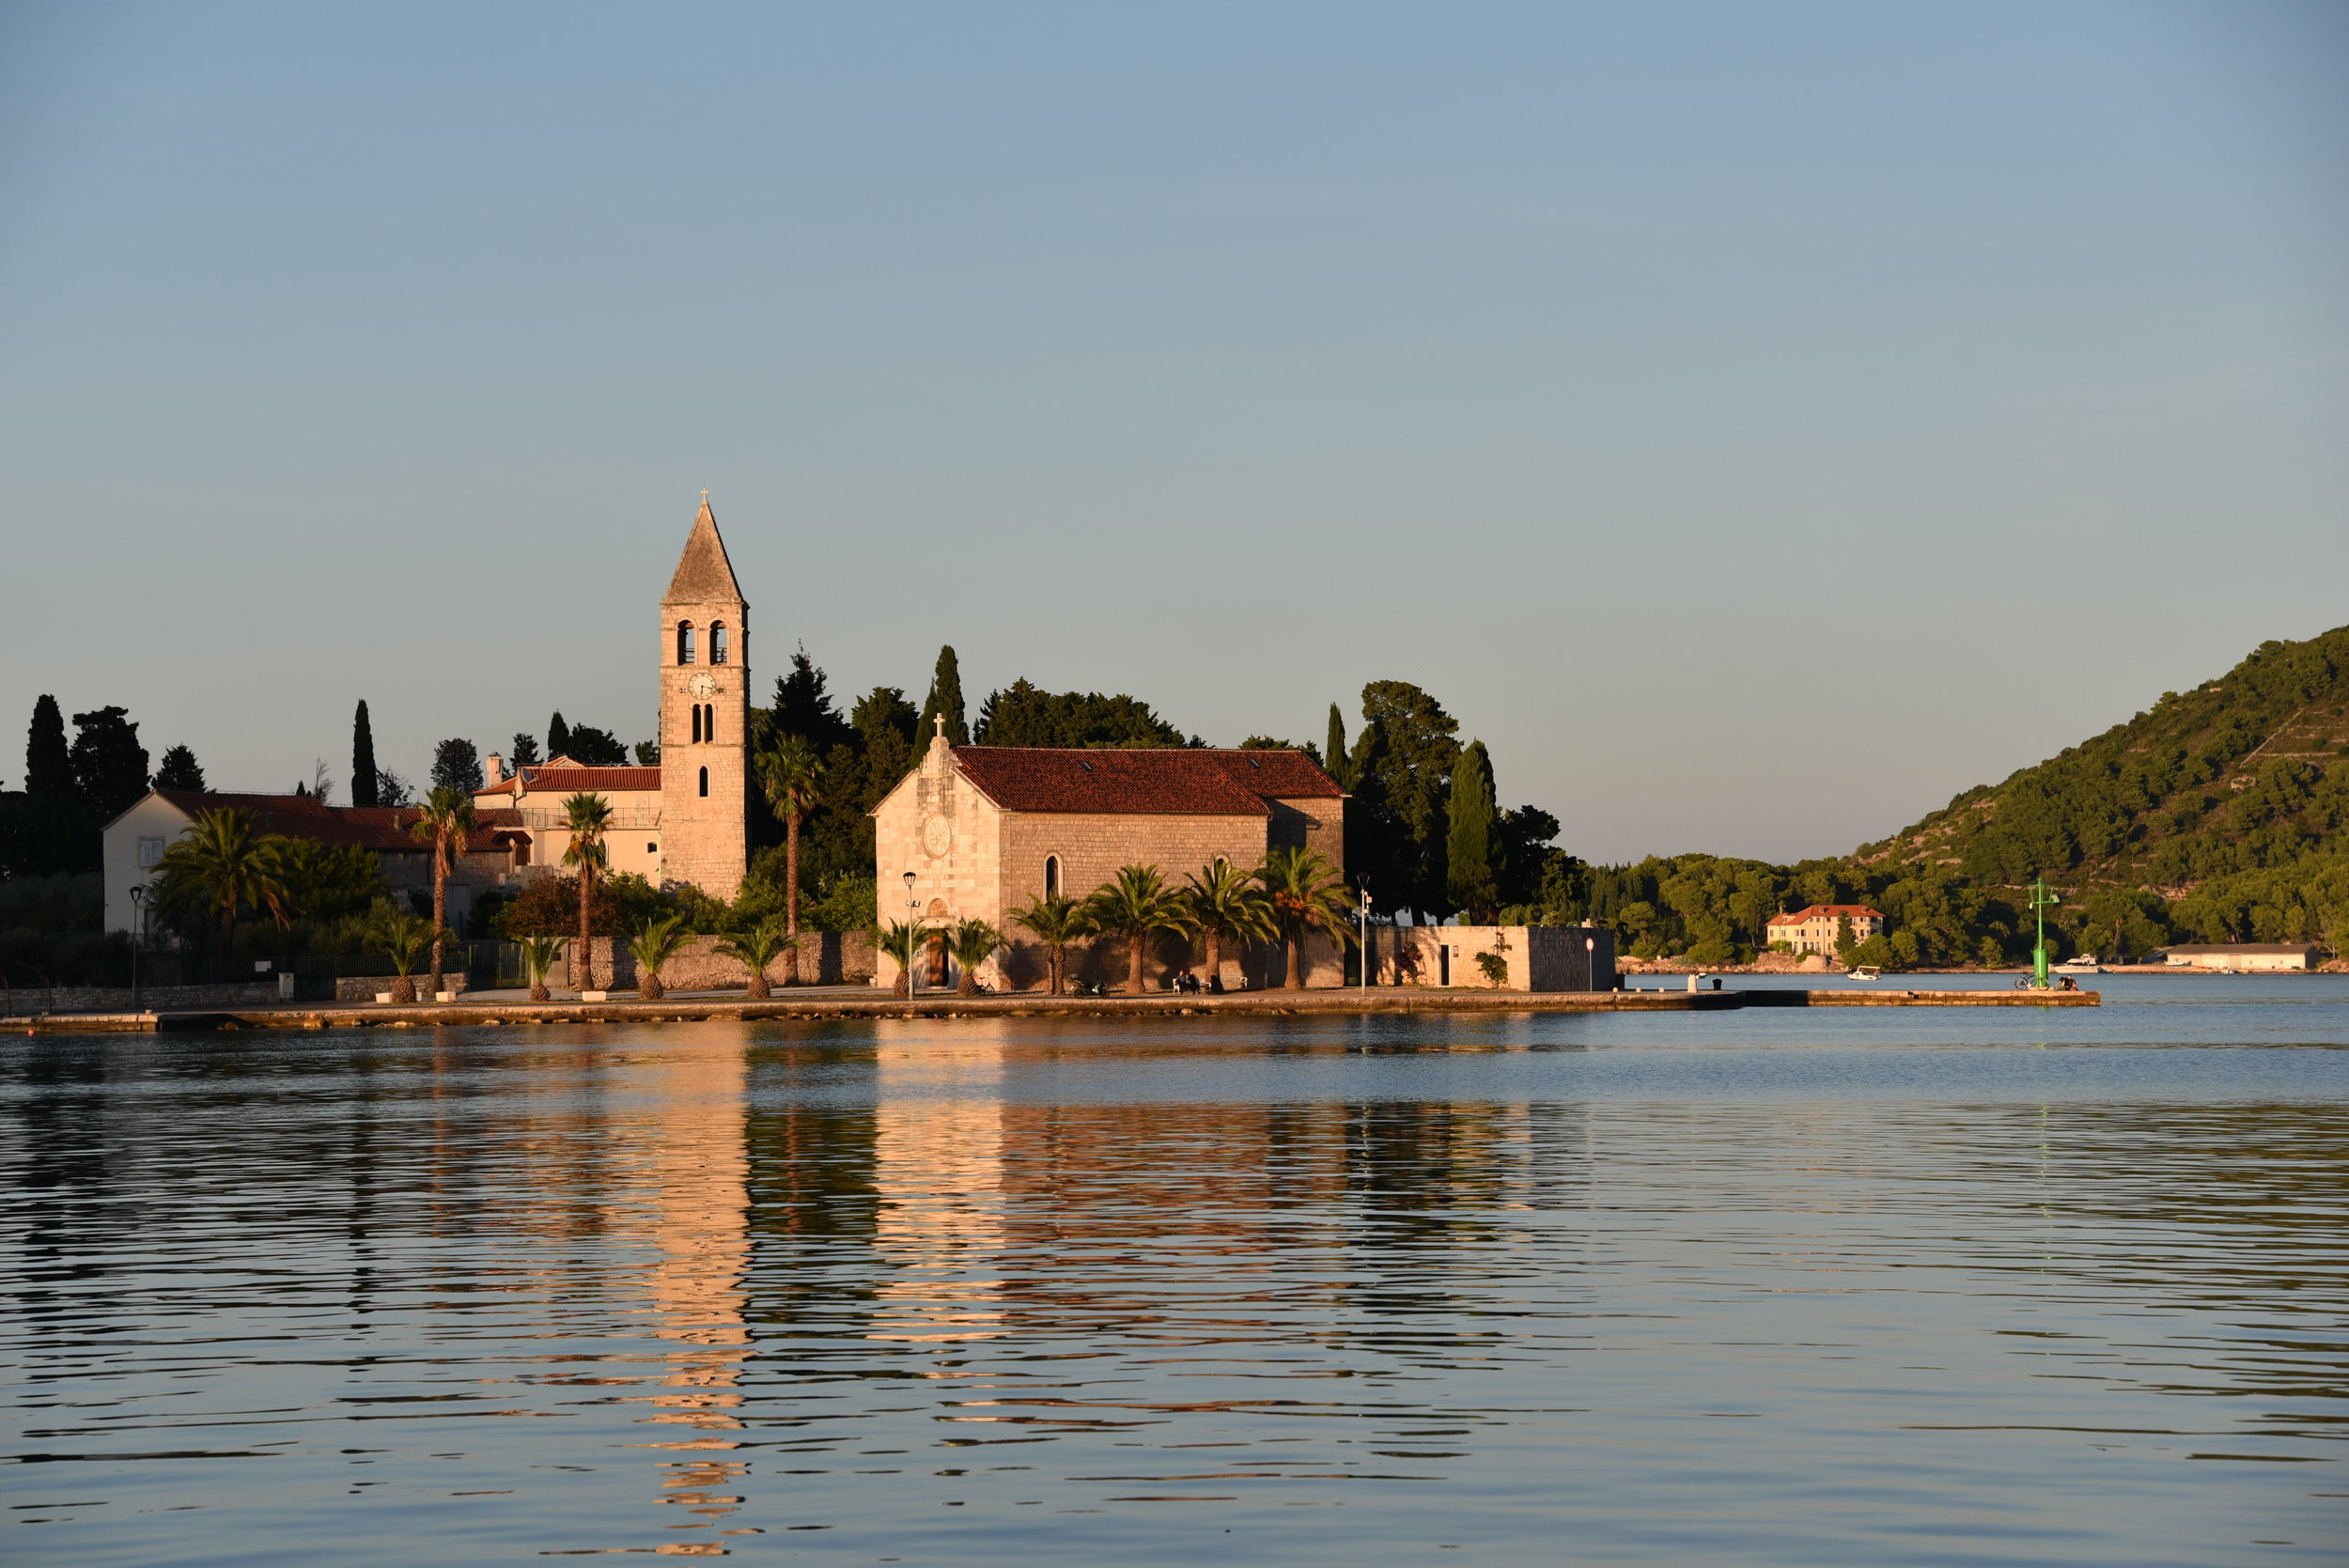 The church across the harbor in Vis Town.